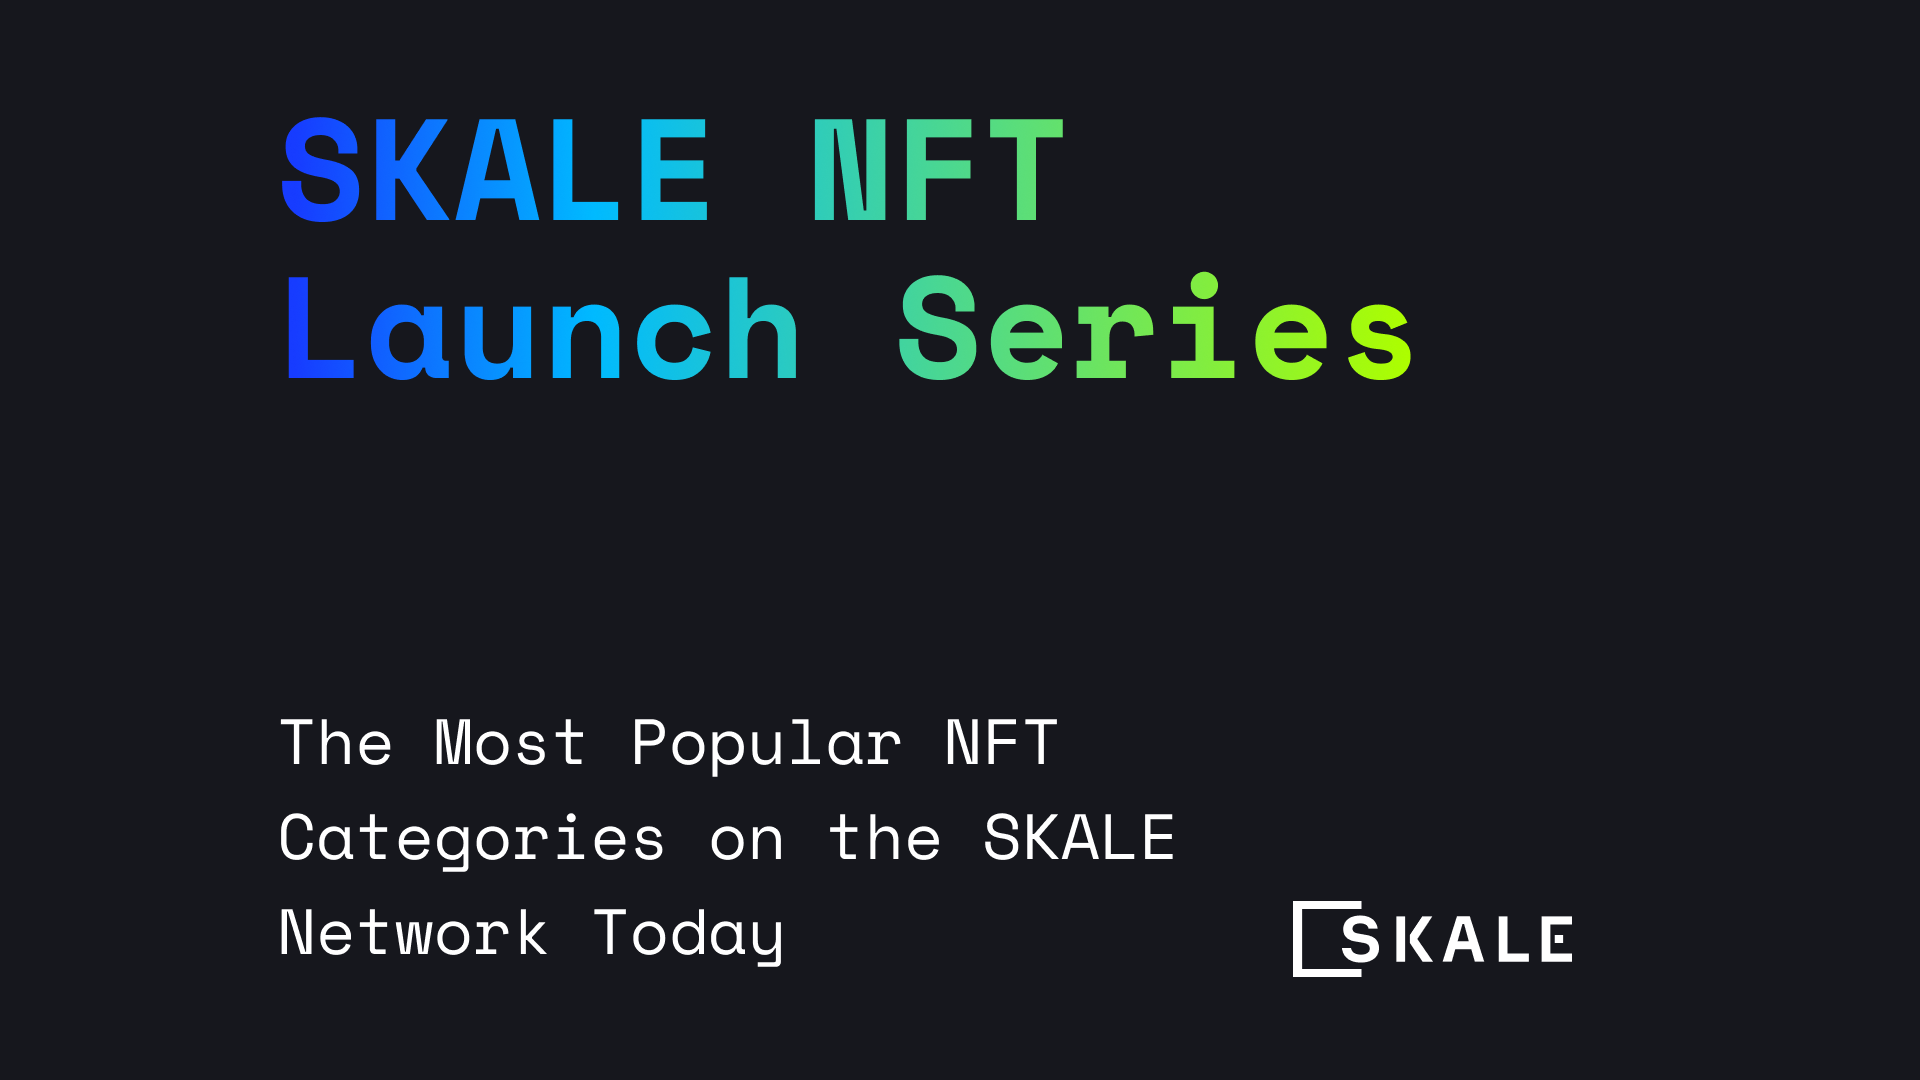 SKALE NFT Launch Series: The Most Popular NFT Categories on the SKALE Network Today